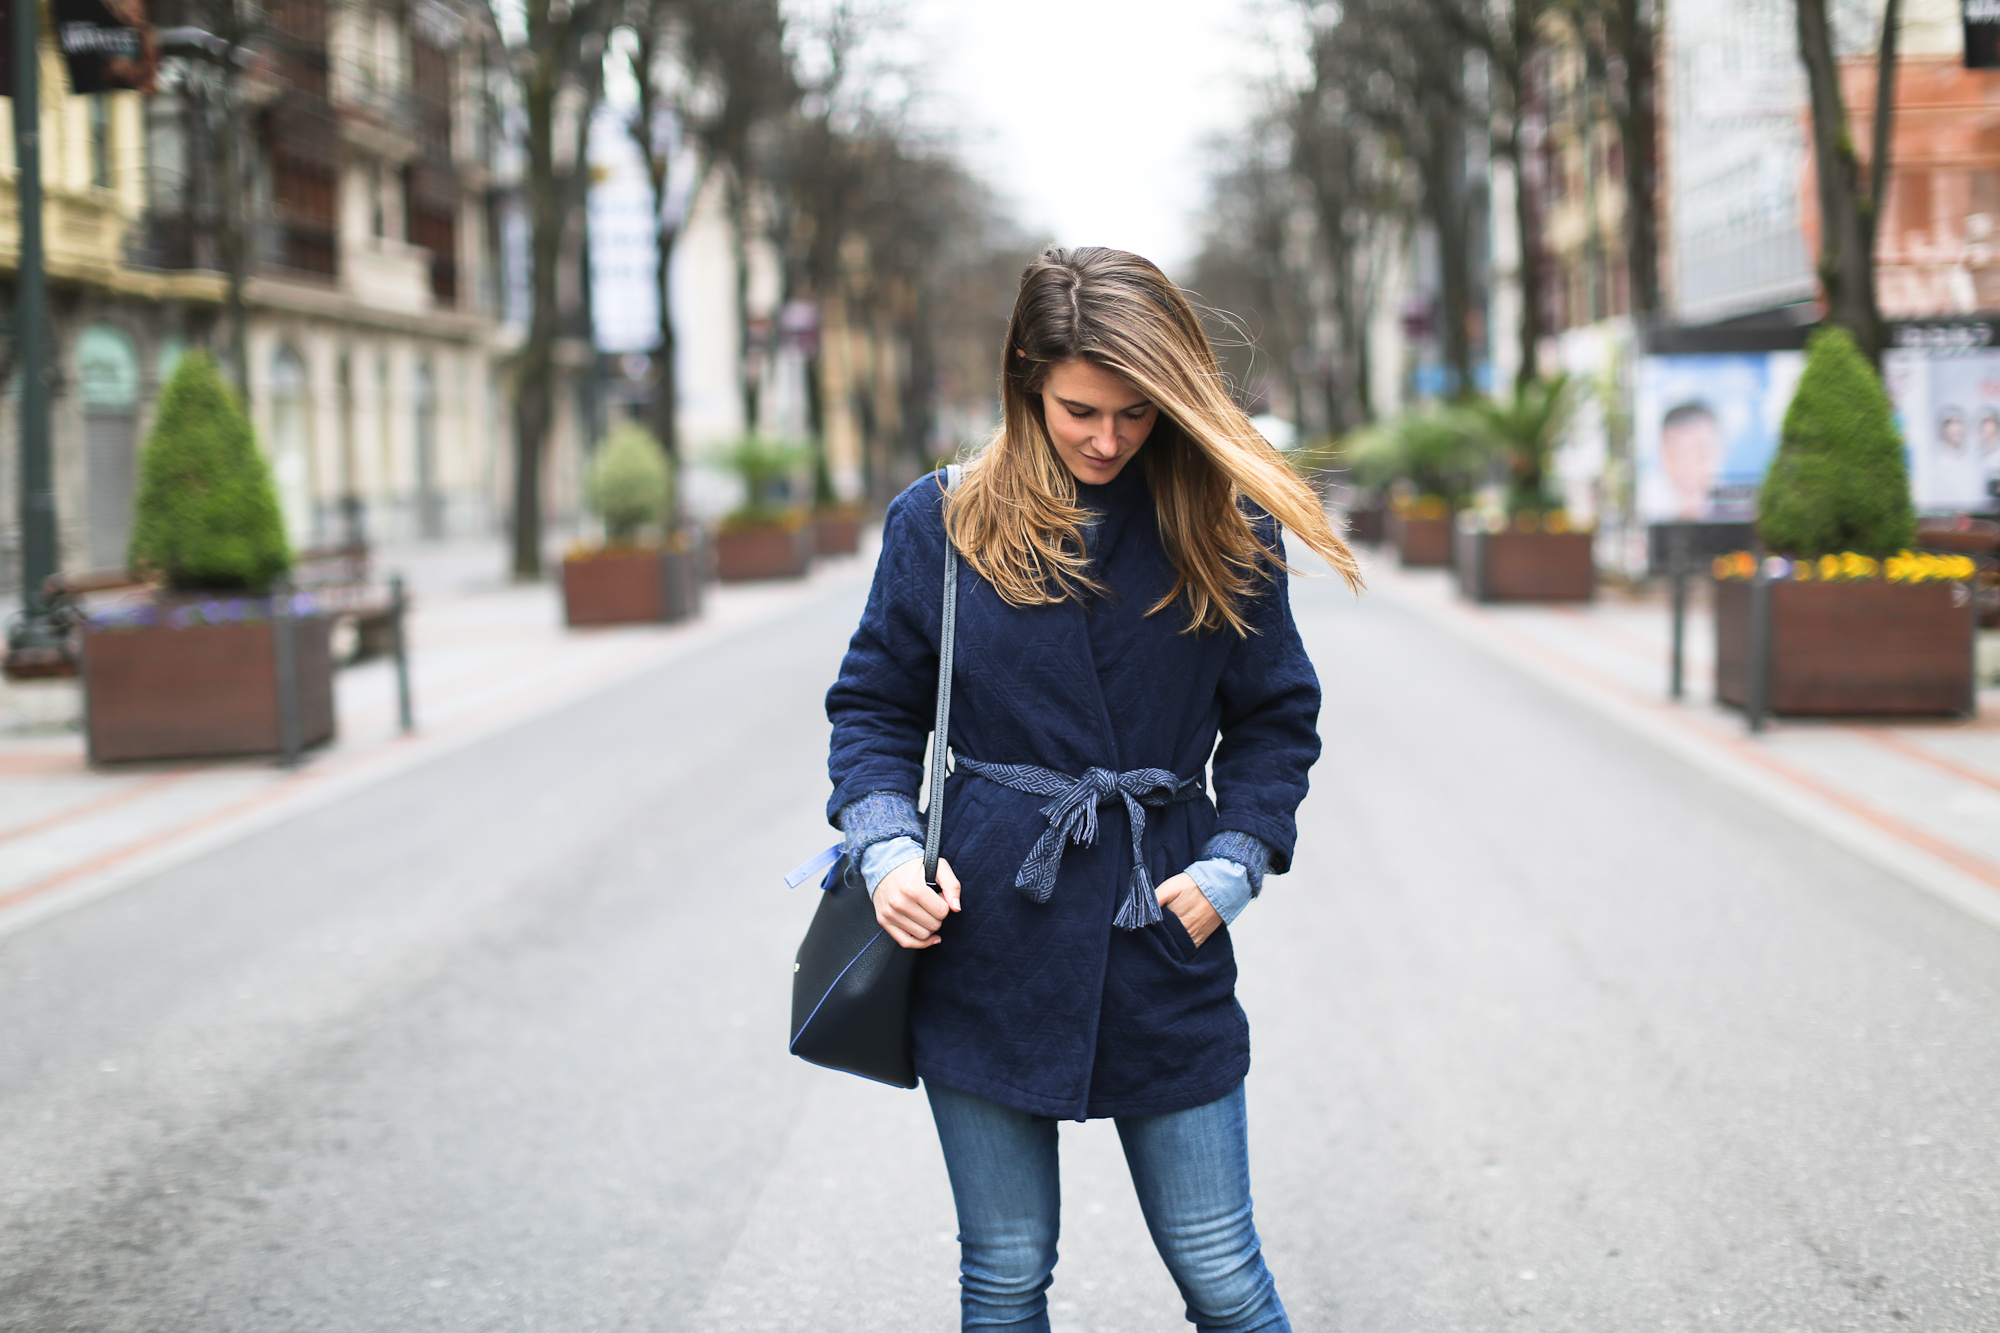 Clochet_streetstyle_pepejeans_skinny_jeans_purificaciongarcia_bucket_bag-8